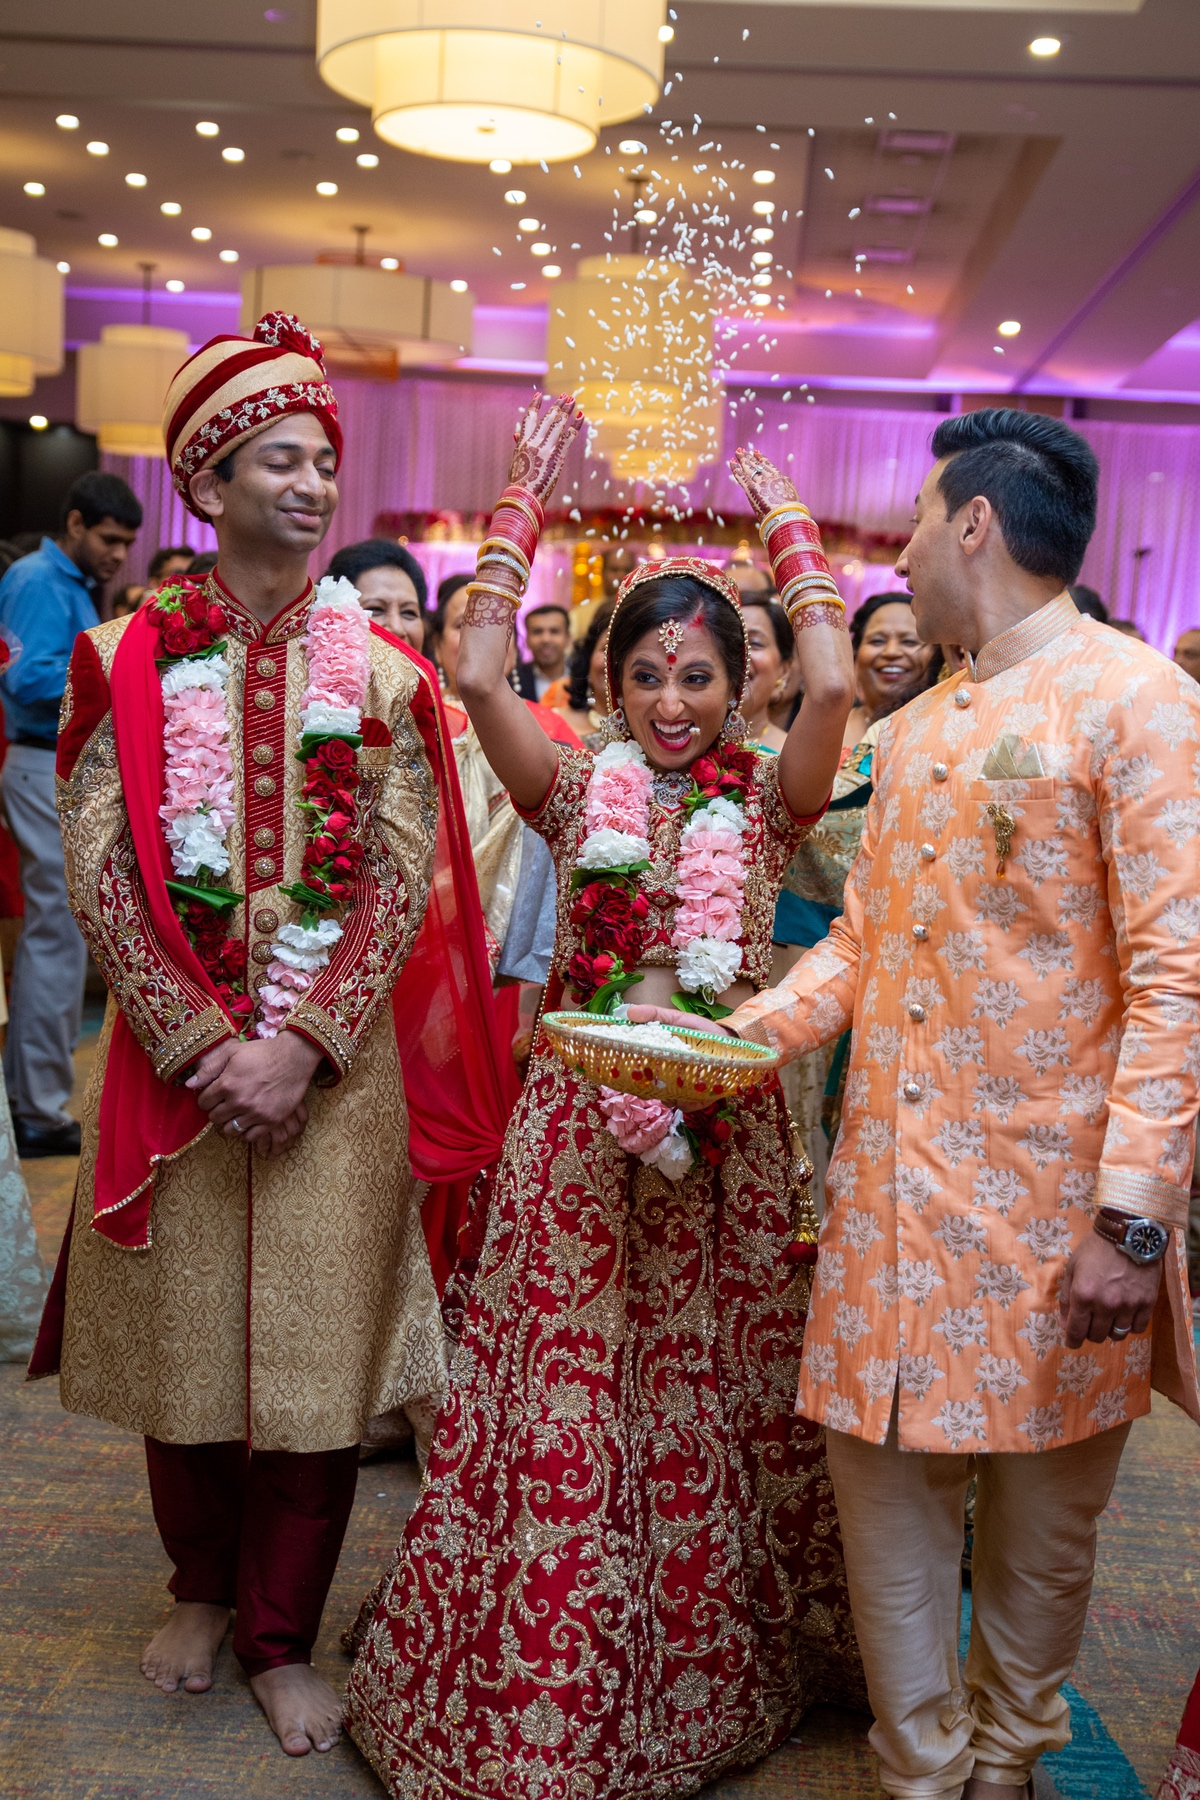 Le Cape Weddings - South Asian Wedding - Chicago Wedding Photographer P&V-67.jpg